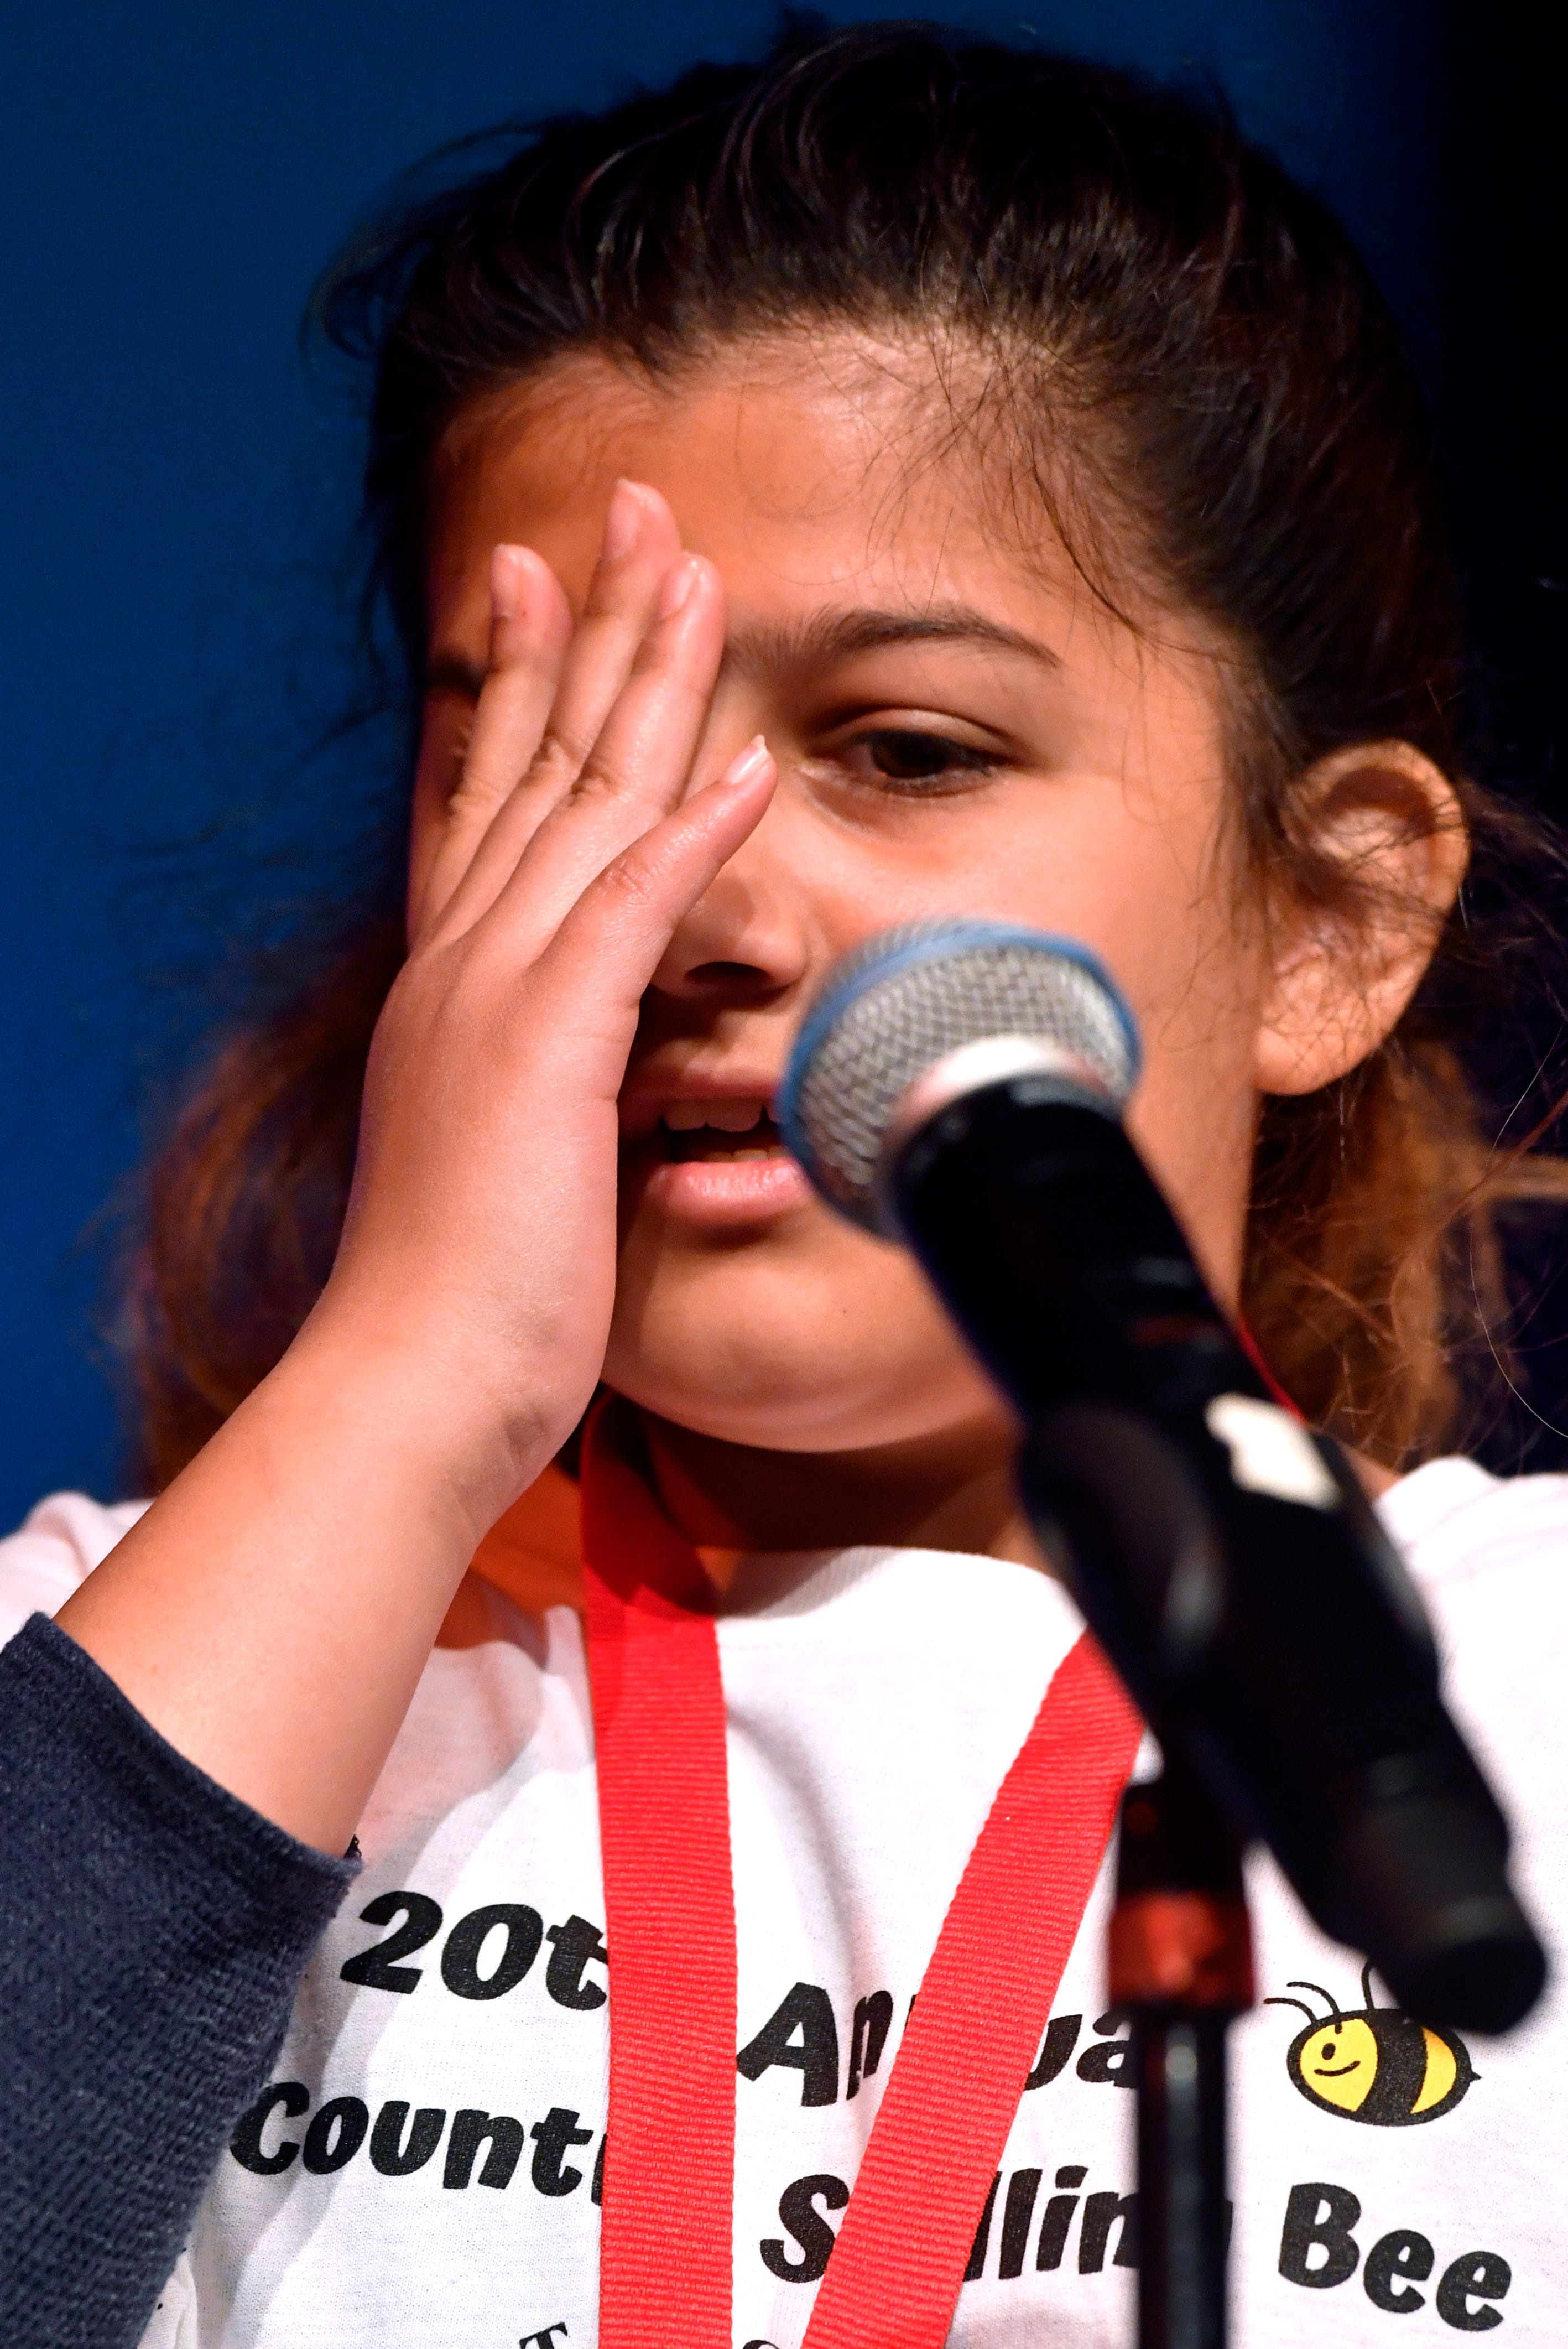 """Vanessa Spencer puts a hand to her face momentarily after hearing the word she had to spell, """"expertise"""", during Saturday's 20th Big Country Spelling Bee at Hardin-Simmons University's Van Ellis Theatre. Vanessa, who attends Dyess Elementary School, successfully spelled the word."""